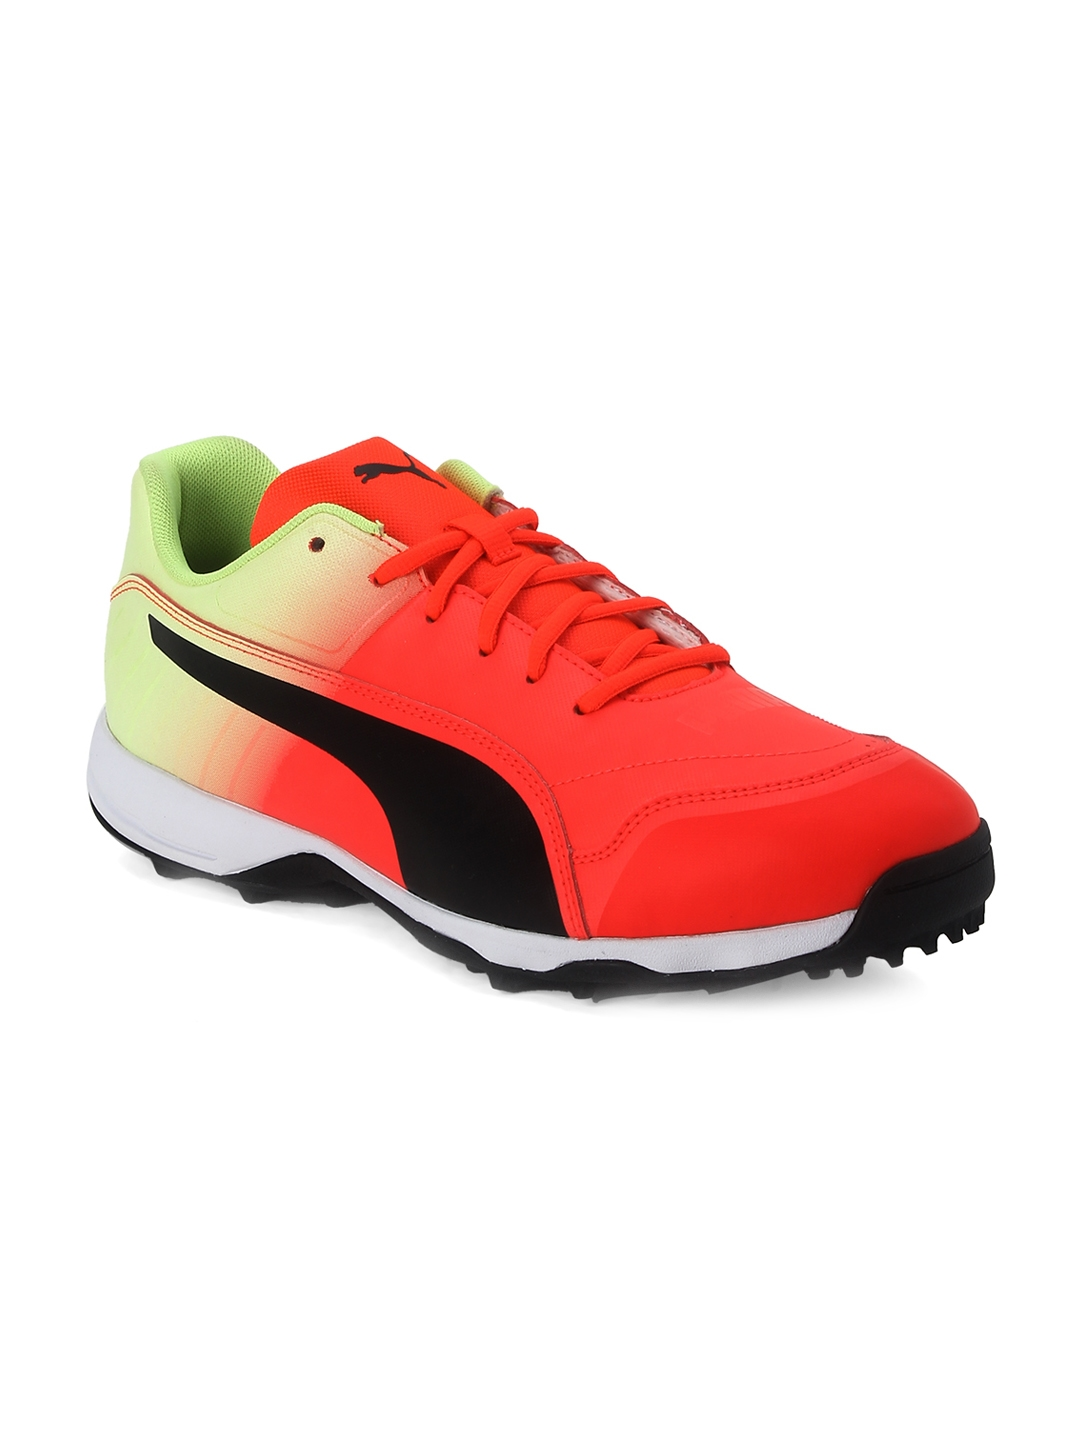 c0233625856 Buy One8 X PUMA Men Red Cricket Shoes - Sports Shoes for Men 4714271 ...